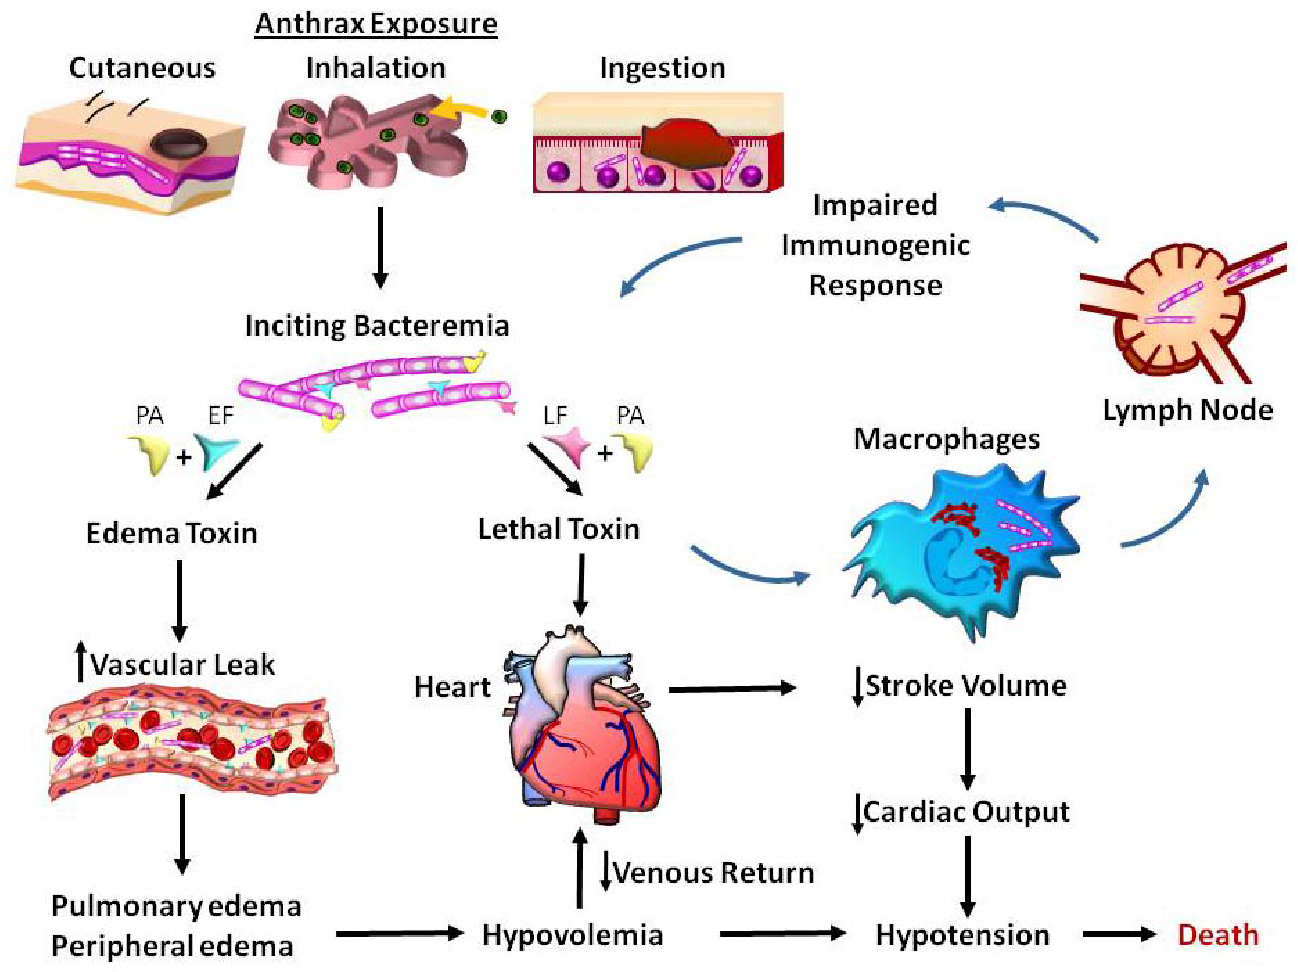 figure 4 from anthrax toxin pathologic effects on the Viral Gastroenteritis Diagram